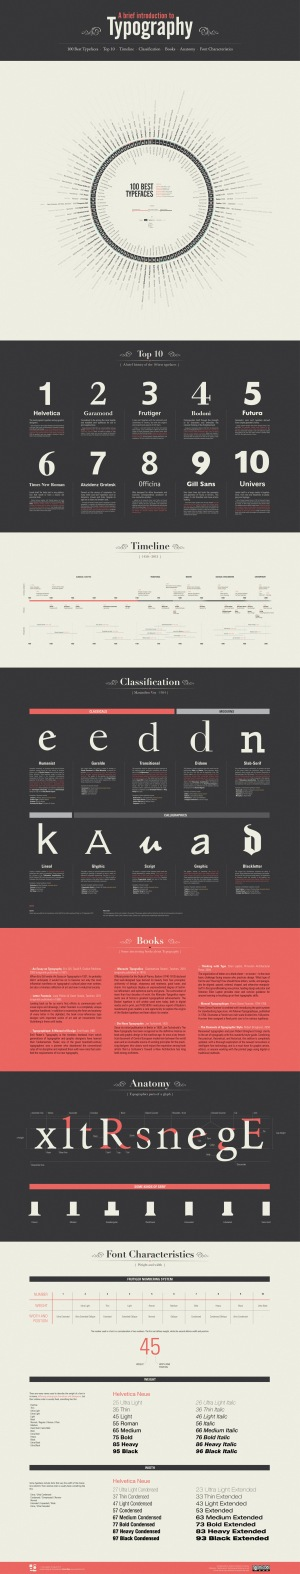 brief_introduction_typography